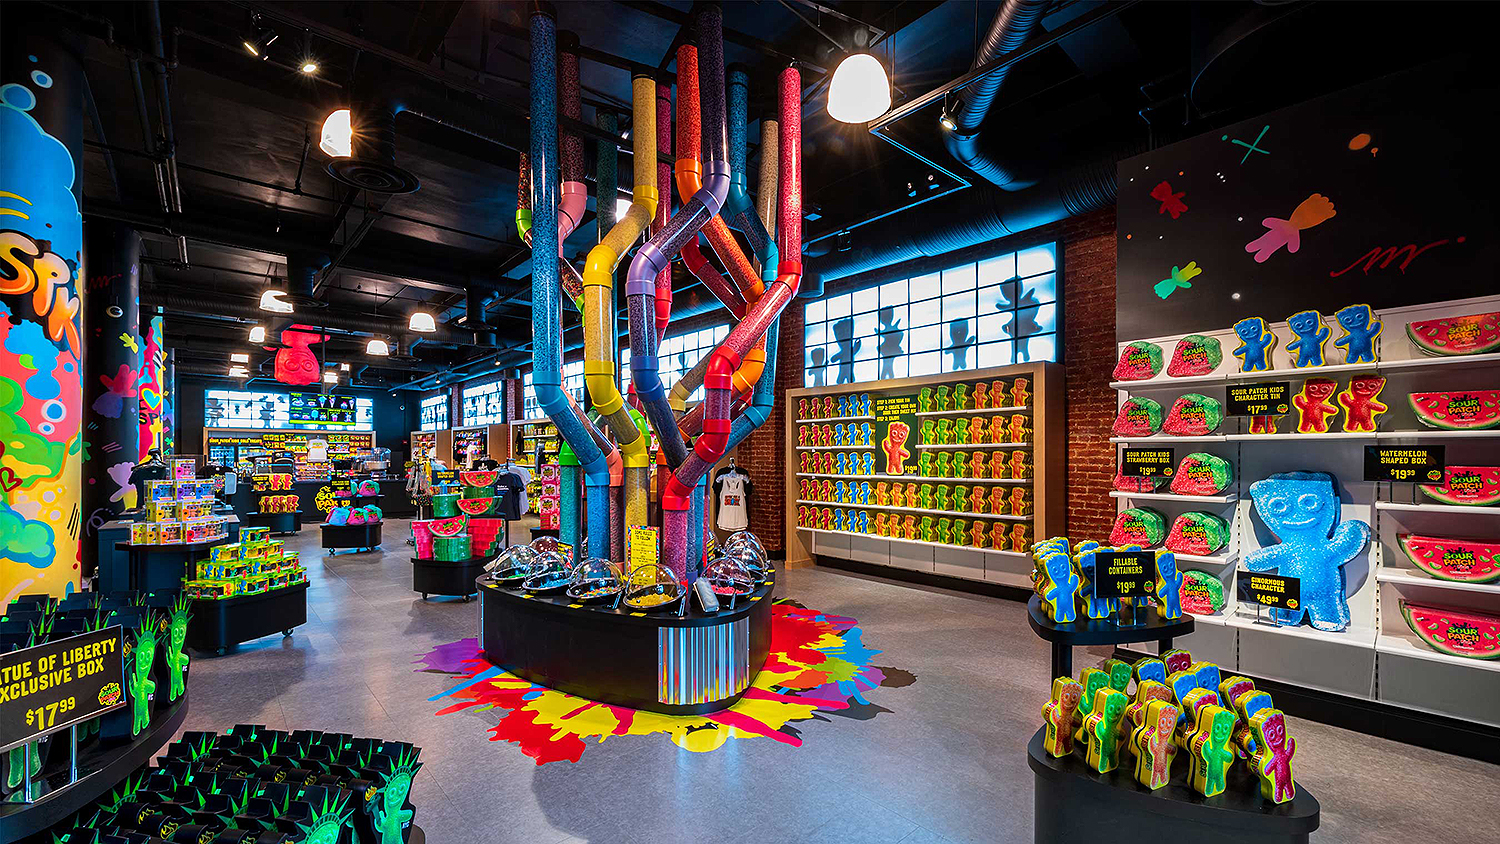 Sour Patch store interior